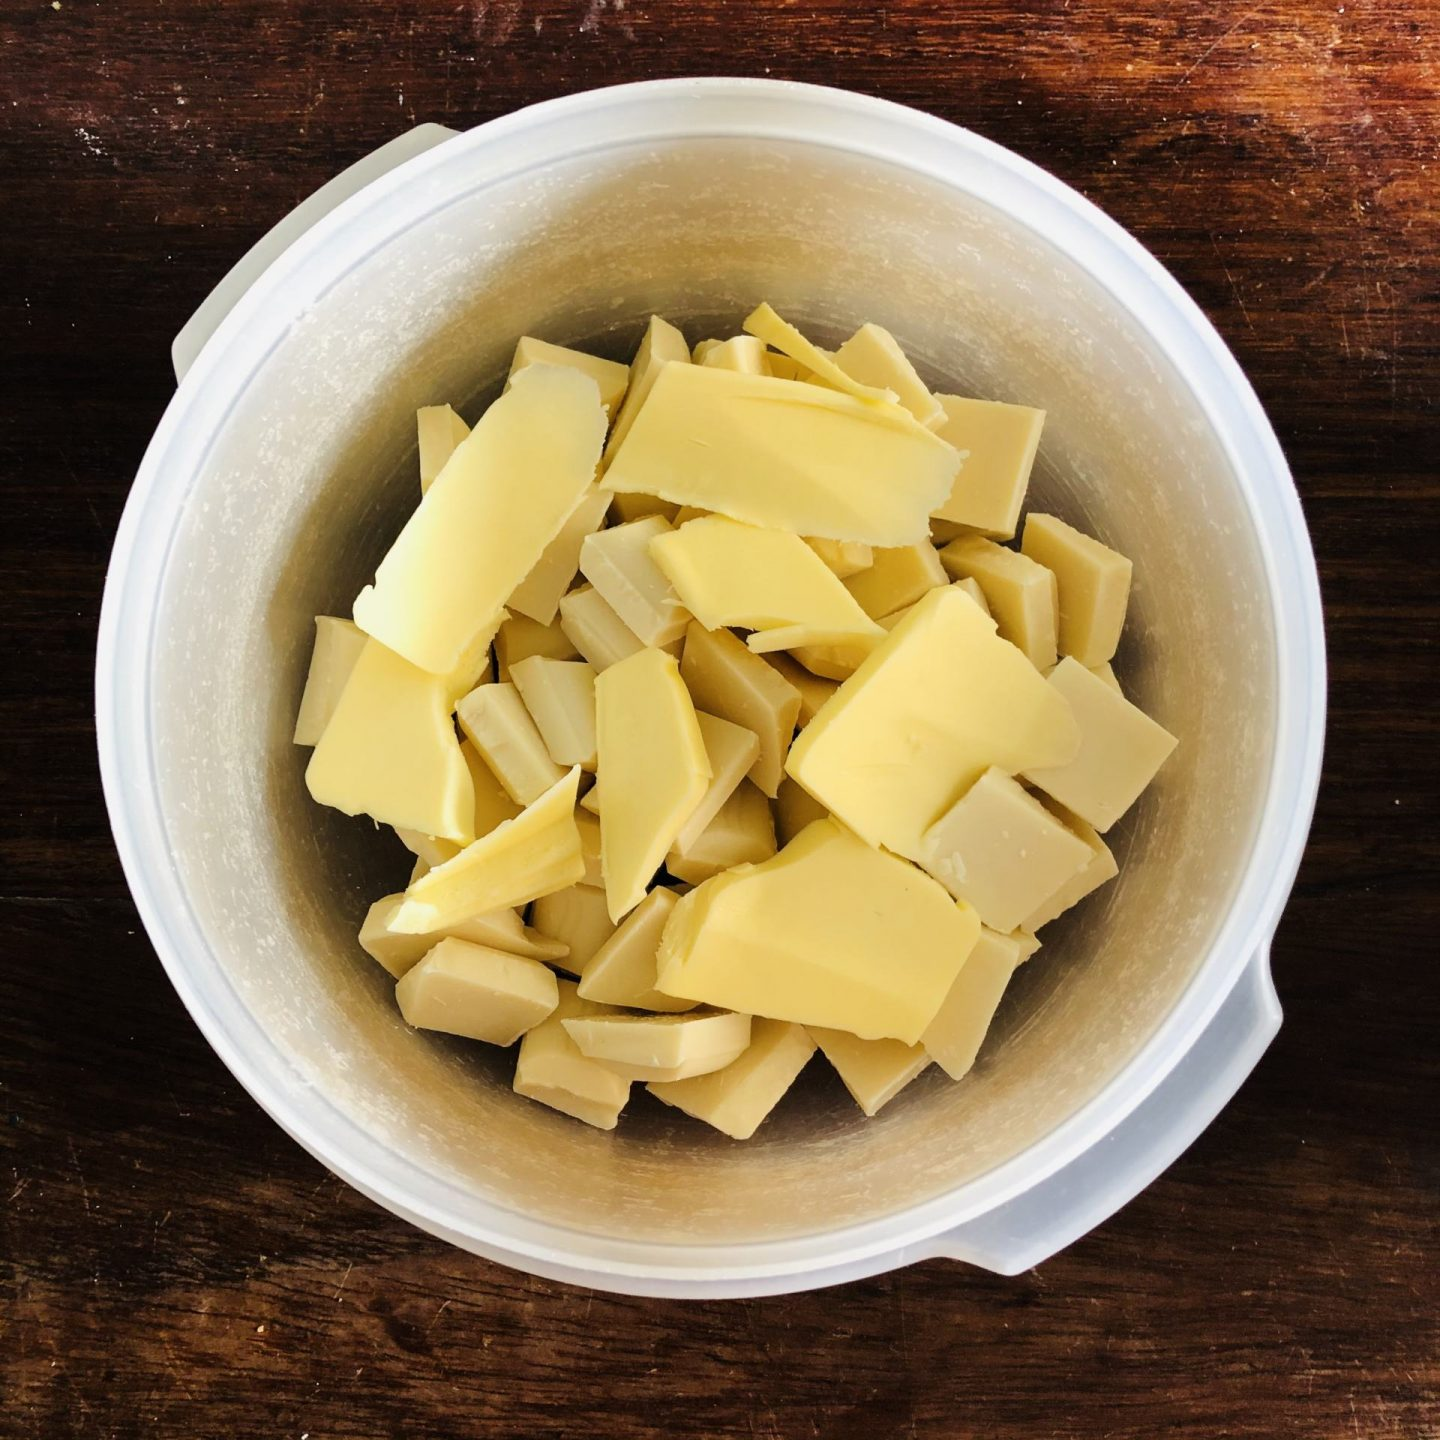 White chocolate and butter in a bowl